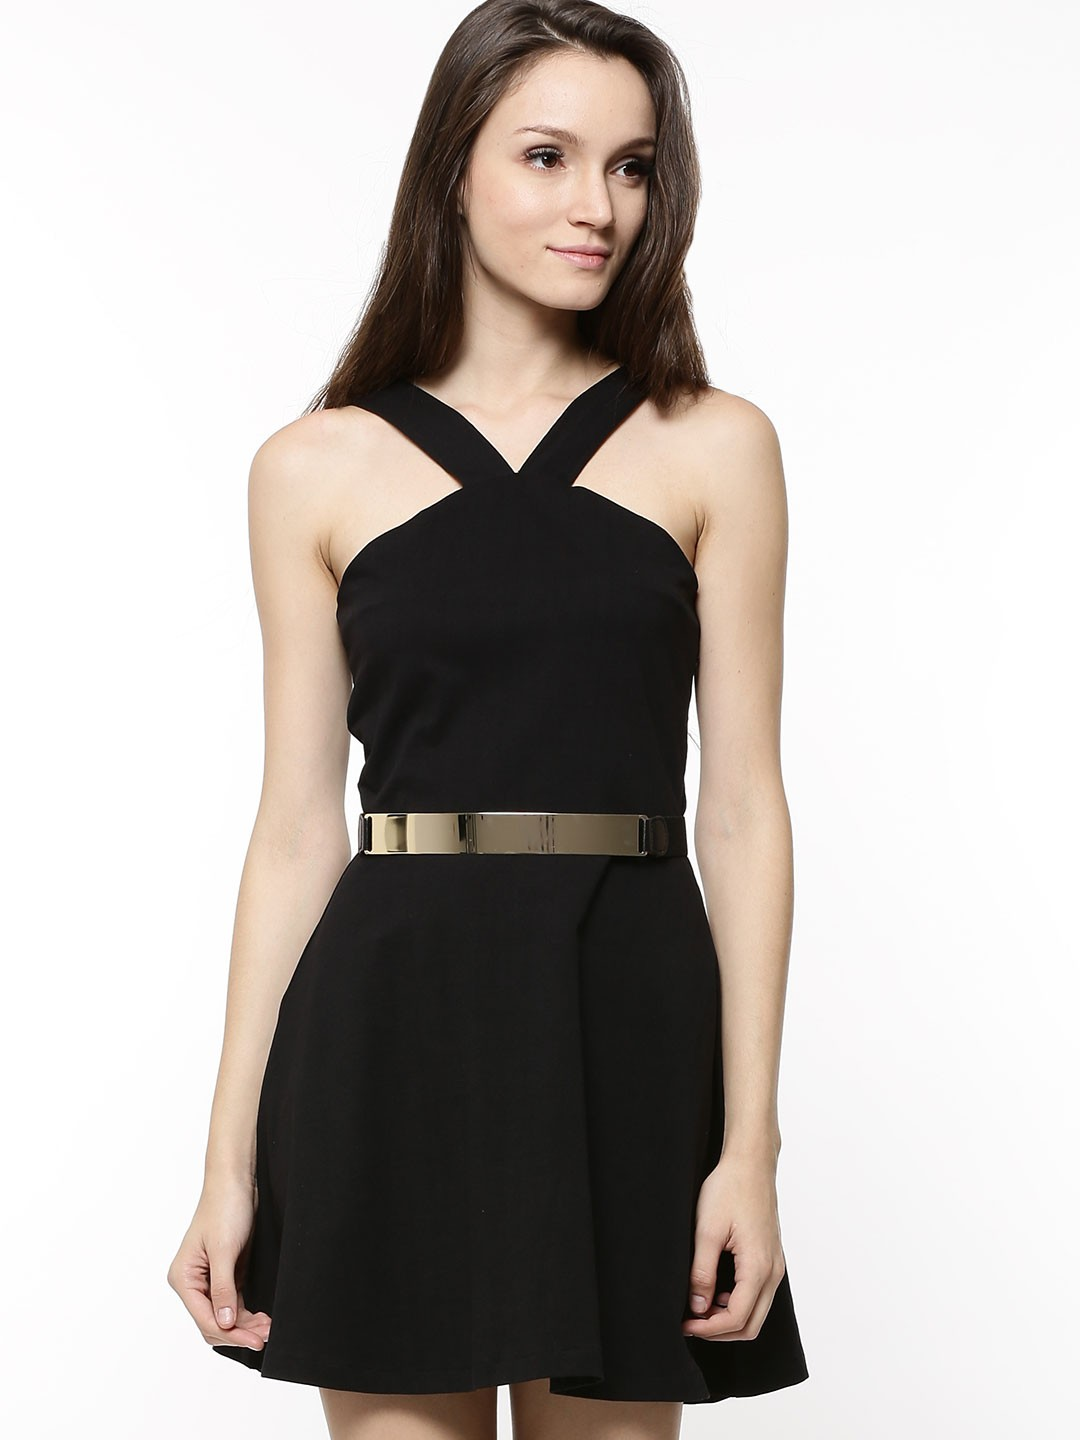 Black dress gold belt - Faballey Strappy Dress With Gold Belt